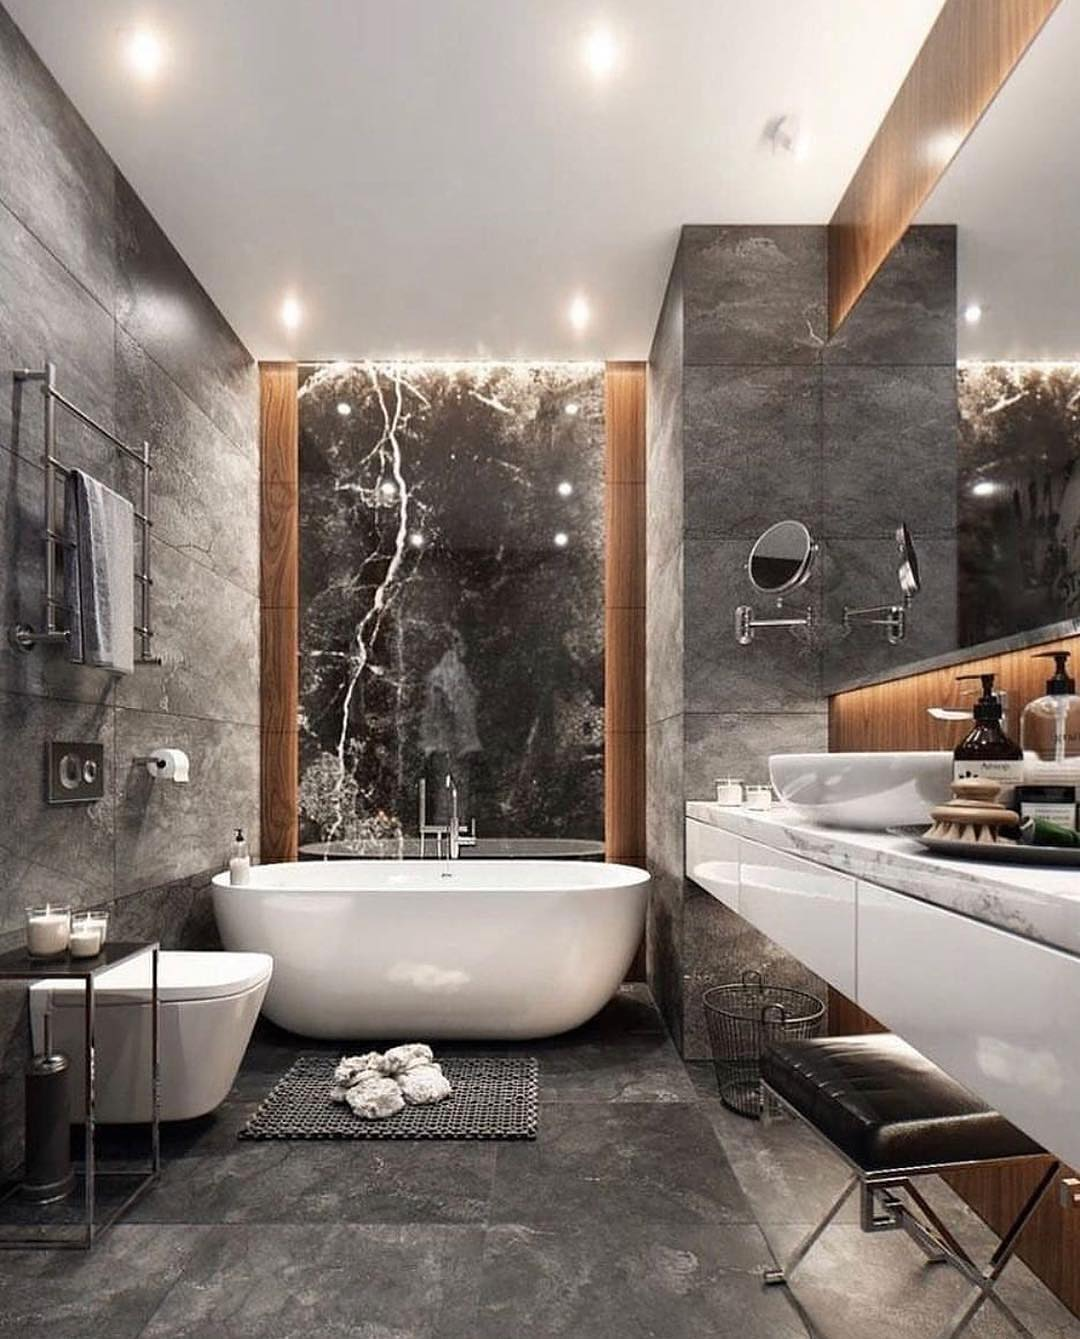 30+ OF THE MOST BEAUTIFUL BATHROOM DESIGNS 2019